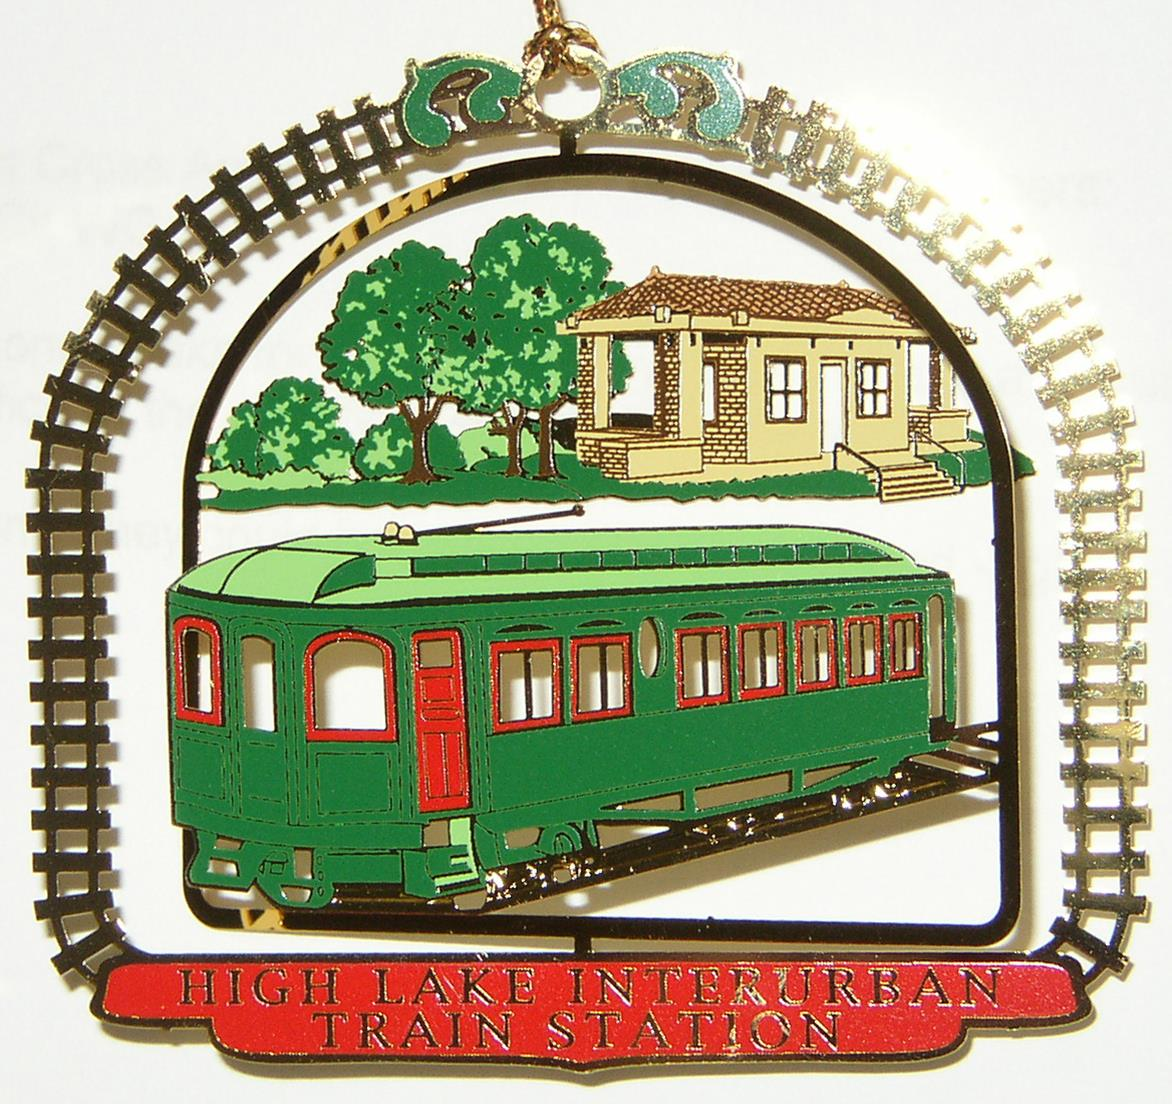 """2005- AE&C High Lake   High Lake was an early """"streetcar suburb,"""" developed in 1910, and serviced by the Geneva branch of the Aurora Elgin & Chicago (AE&C), an electric interurban railway. Commuter service began in 1909 and one could travel from High Lake to Chicago in under an hour. In 1910 an attractive brick station with a clay tile roof was built. Travelers would raise a semaphore signal to stop the train at the station. Service on the Geneva branch was discontinued in 1937."""